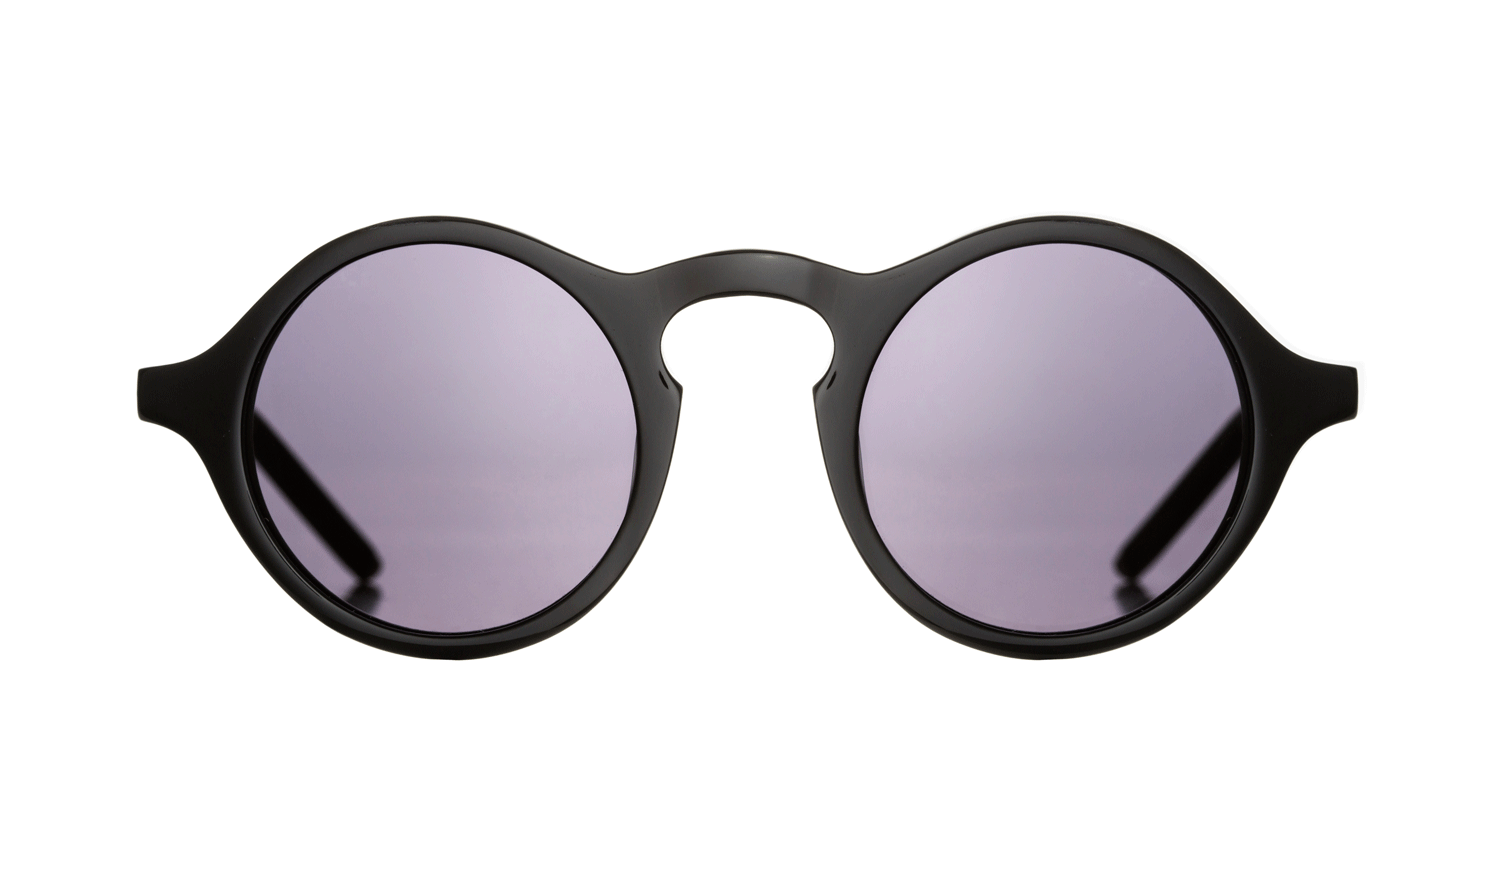 Bryan Sunglasses - Black Gold